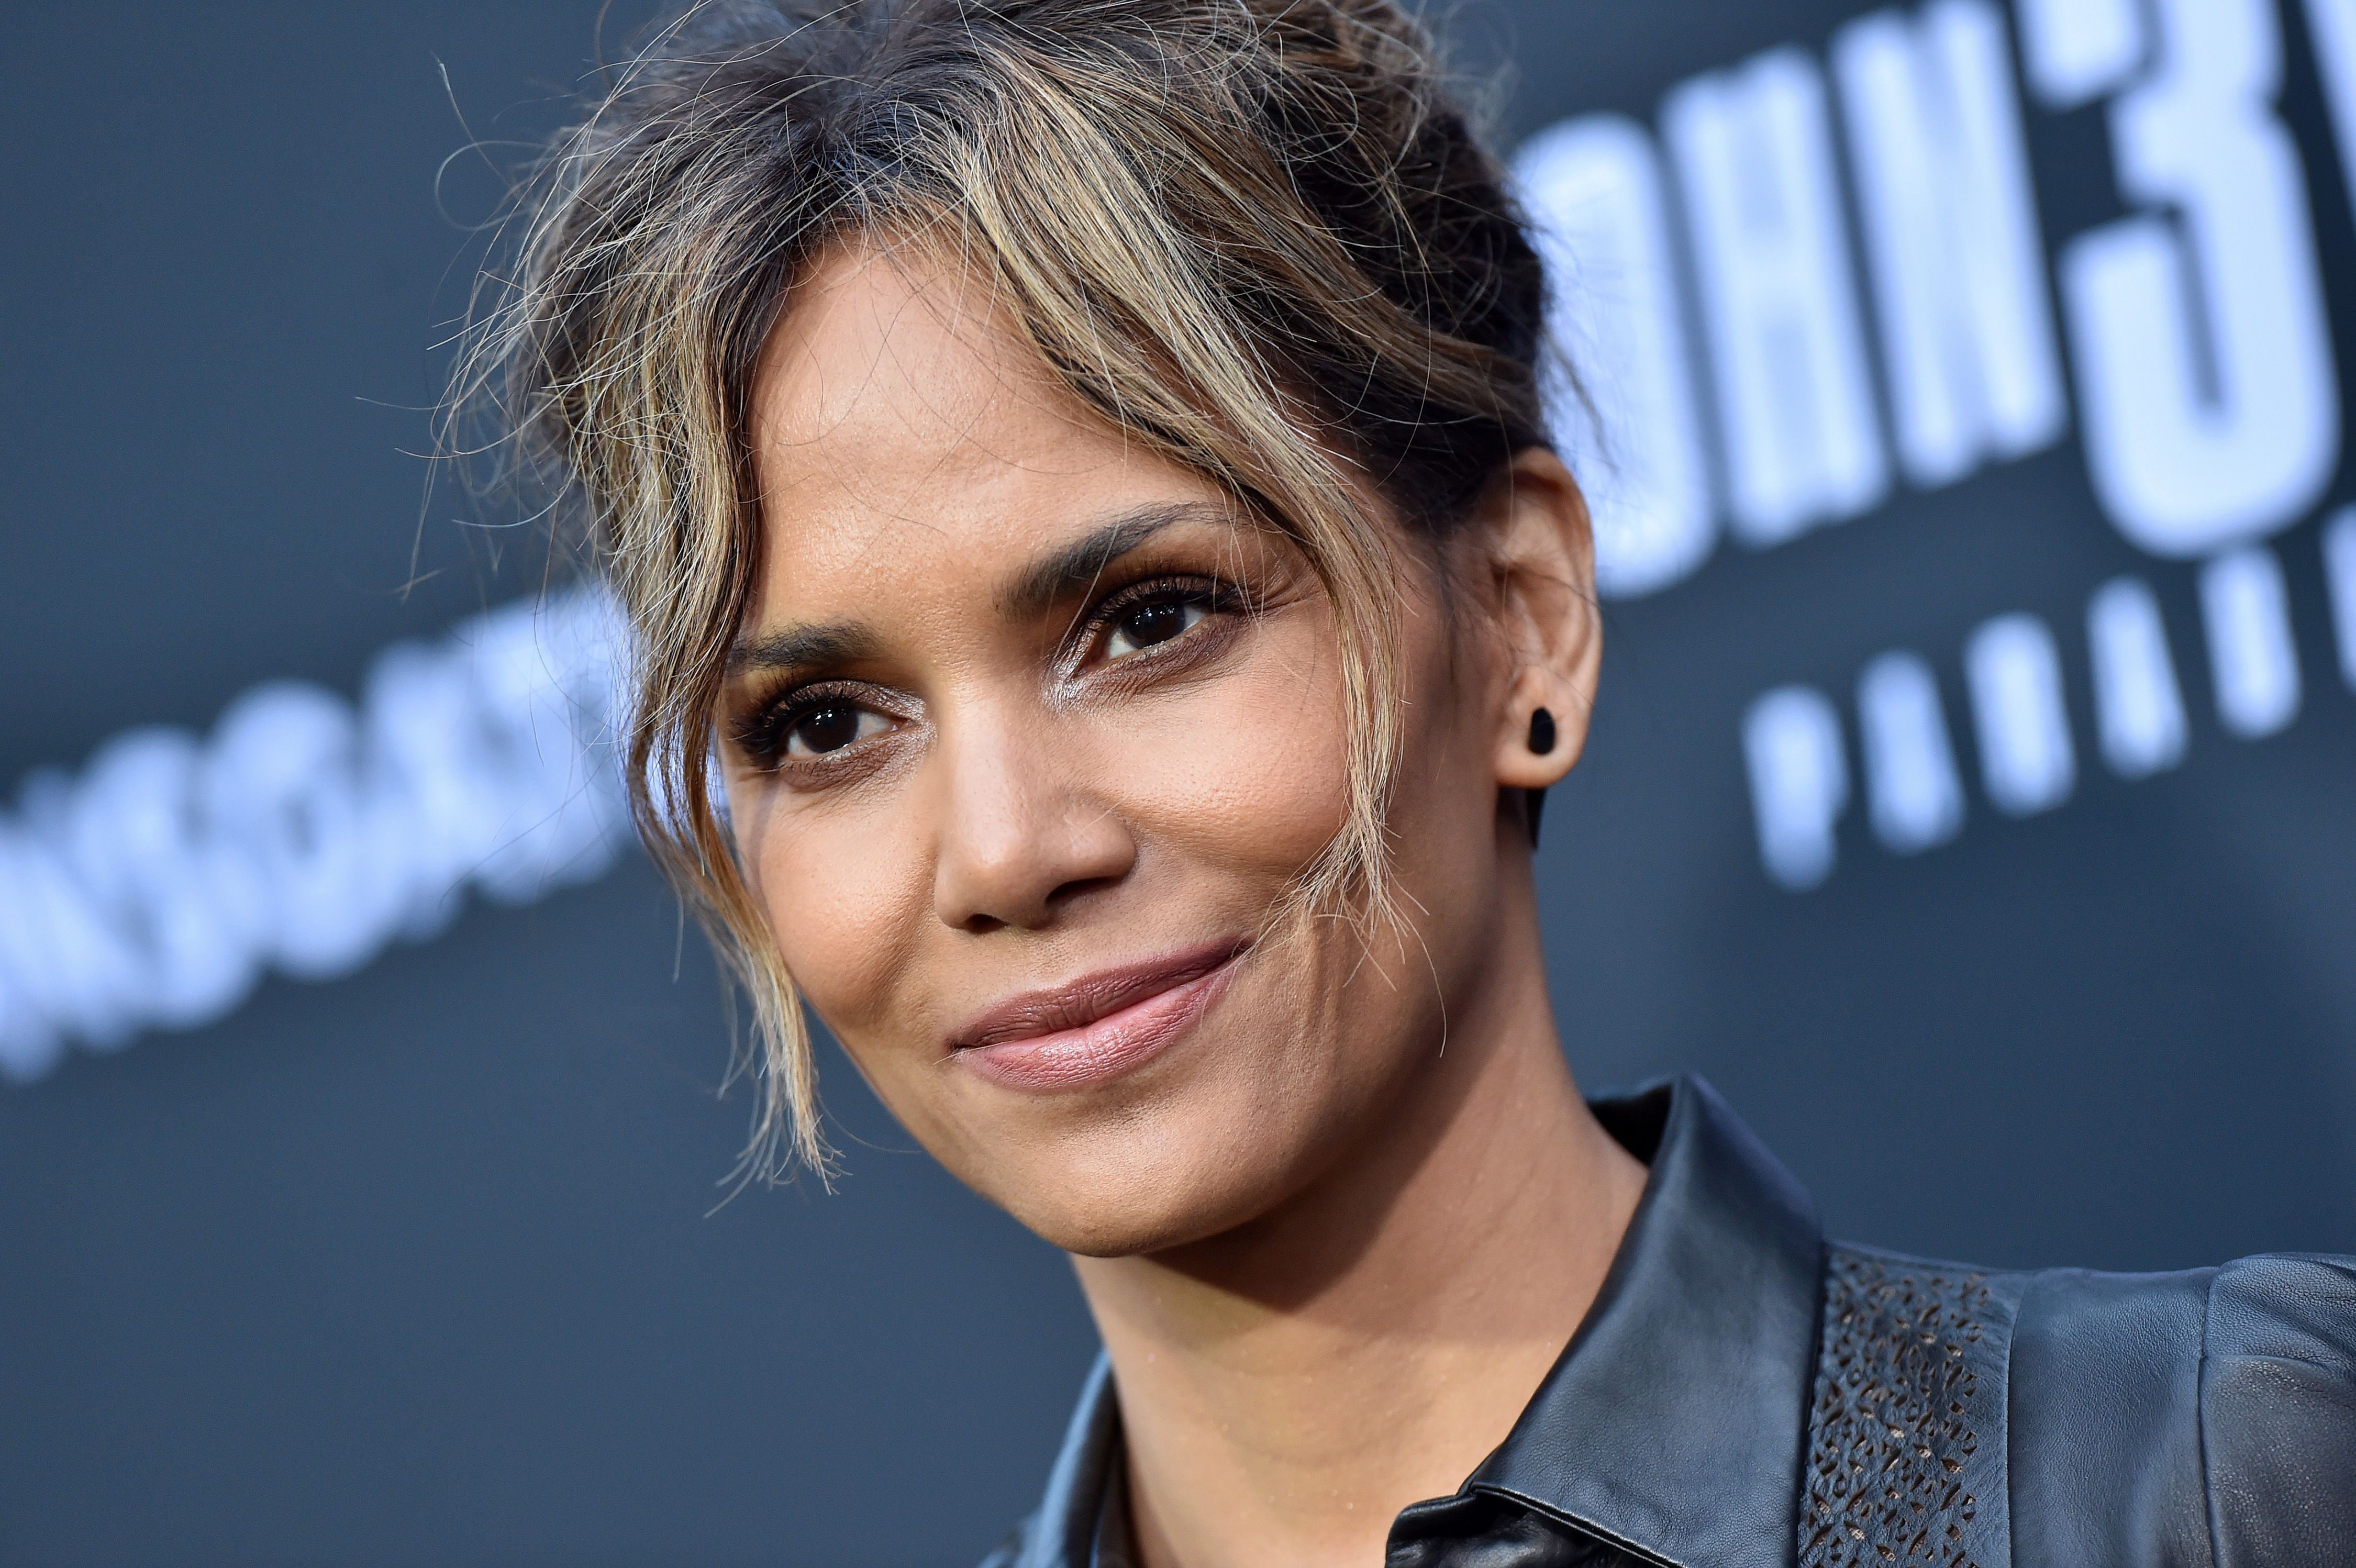 Halle Berry Shares Cute Video of Her Son Maceo Walking in Heels